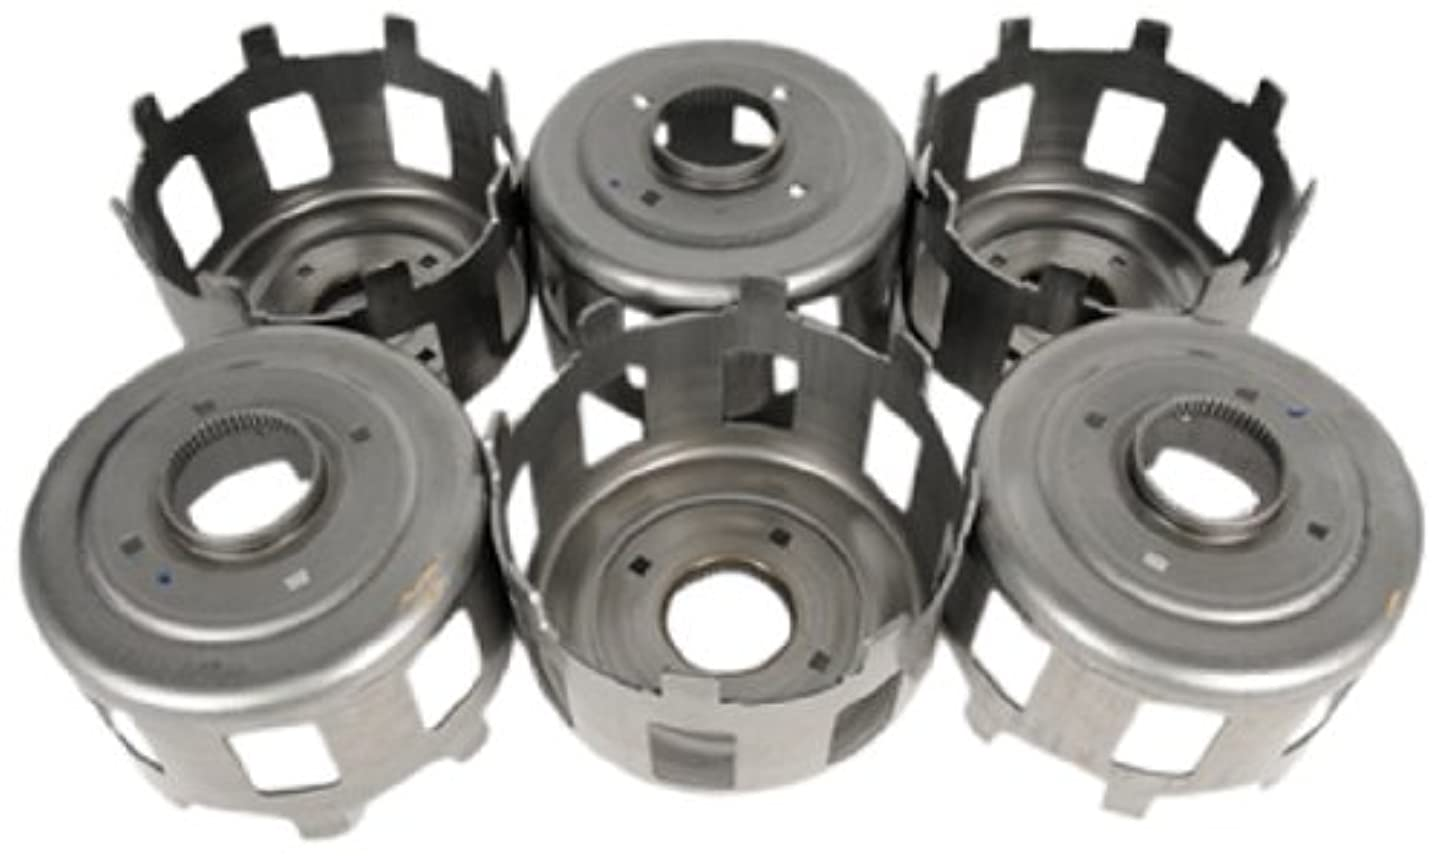 ACDelco 19258701 GM Original Equipment Automatic Transmission Reaction Sun Gear Shell (Pack of 6)